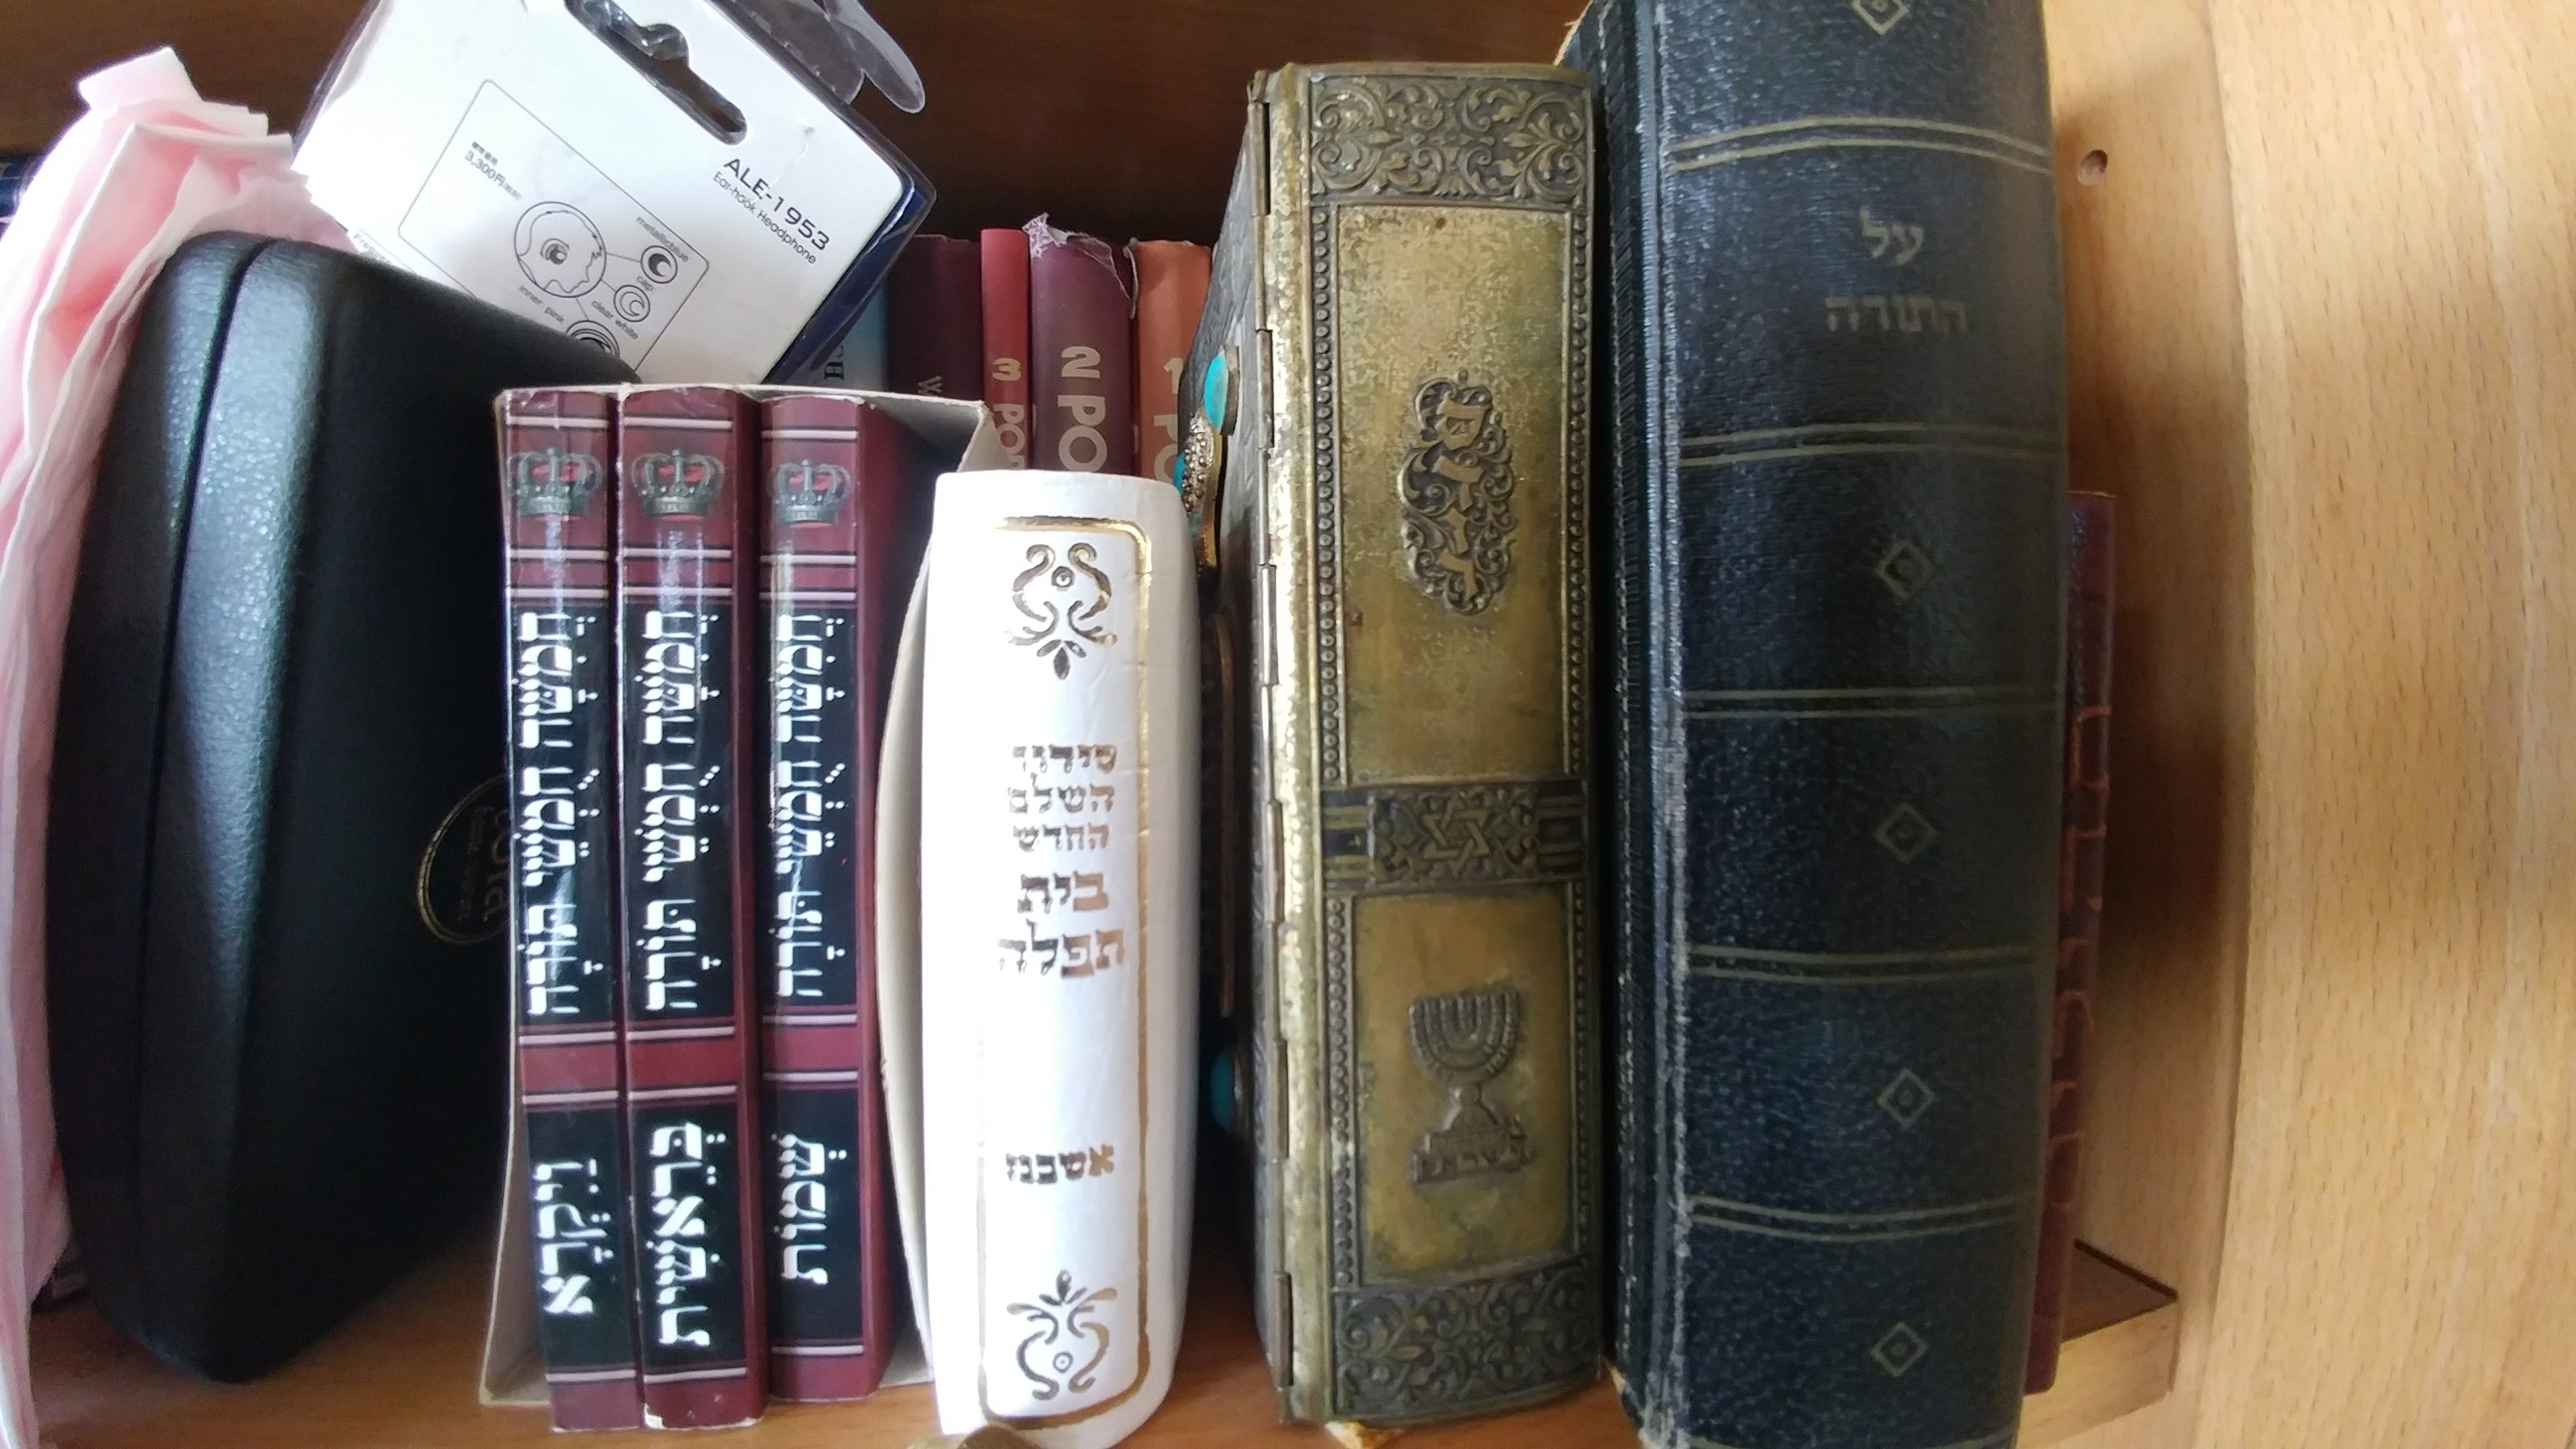 Which books are essential to have in an Orthodox Jew's